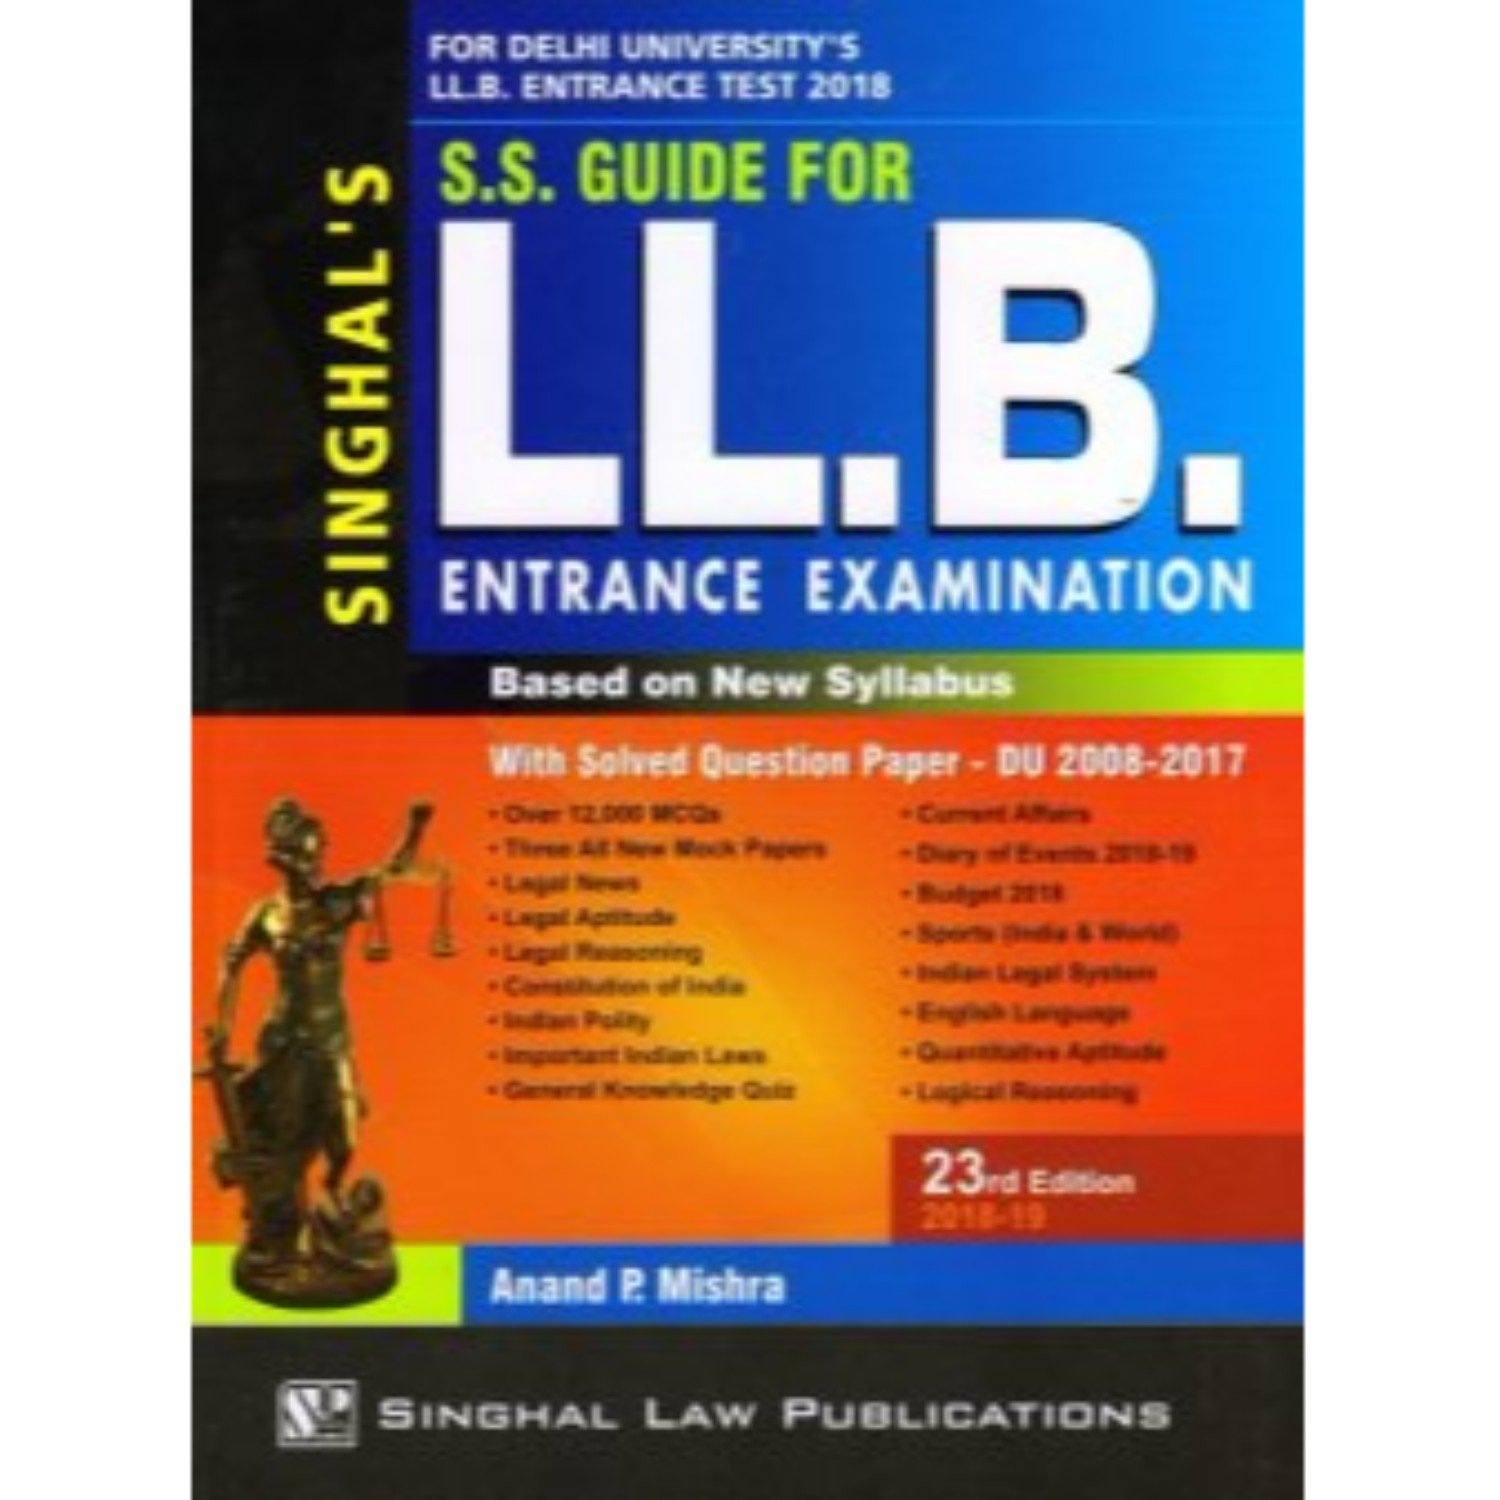 Amazon.in: Buy S.S. Guide for LLB Entrance Examination Based on New  Syllabus Book Online at Low Prices in India | S.S. Guide for LLB Entrance  Examination ...